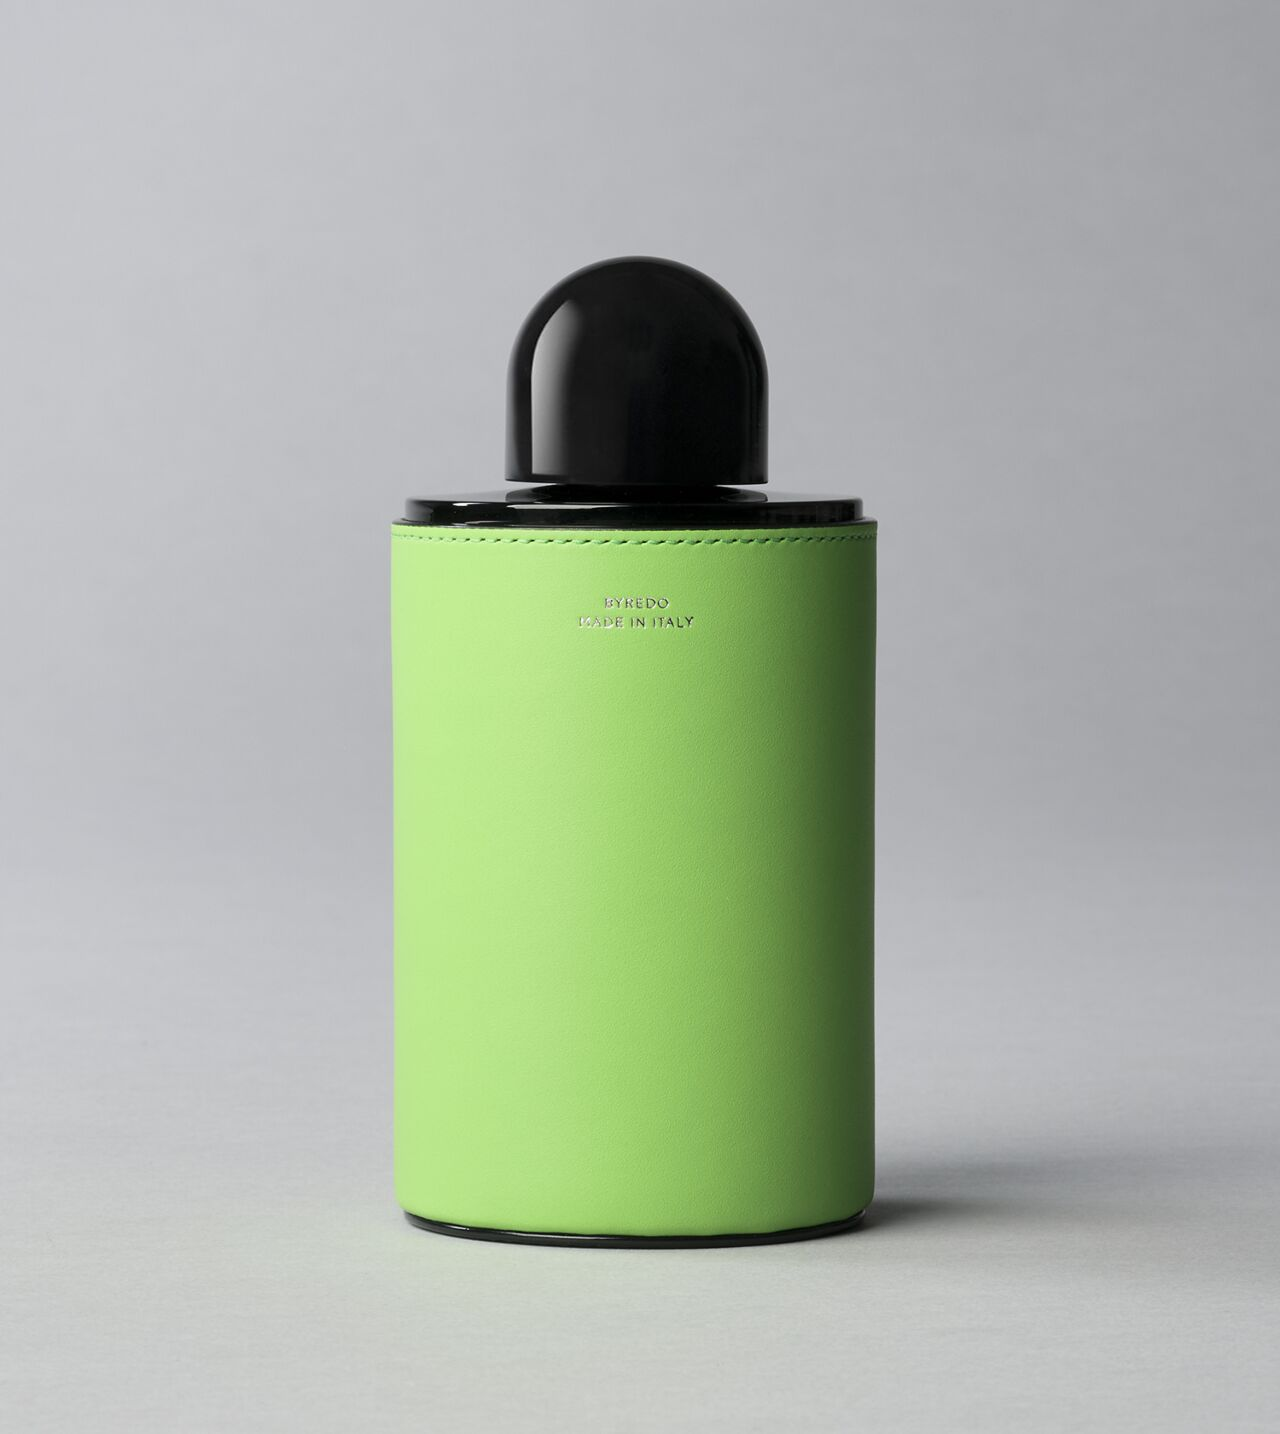 Picture of Byredo Room spray holder 250ml in Green leather